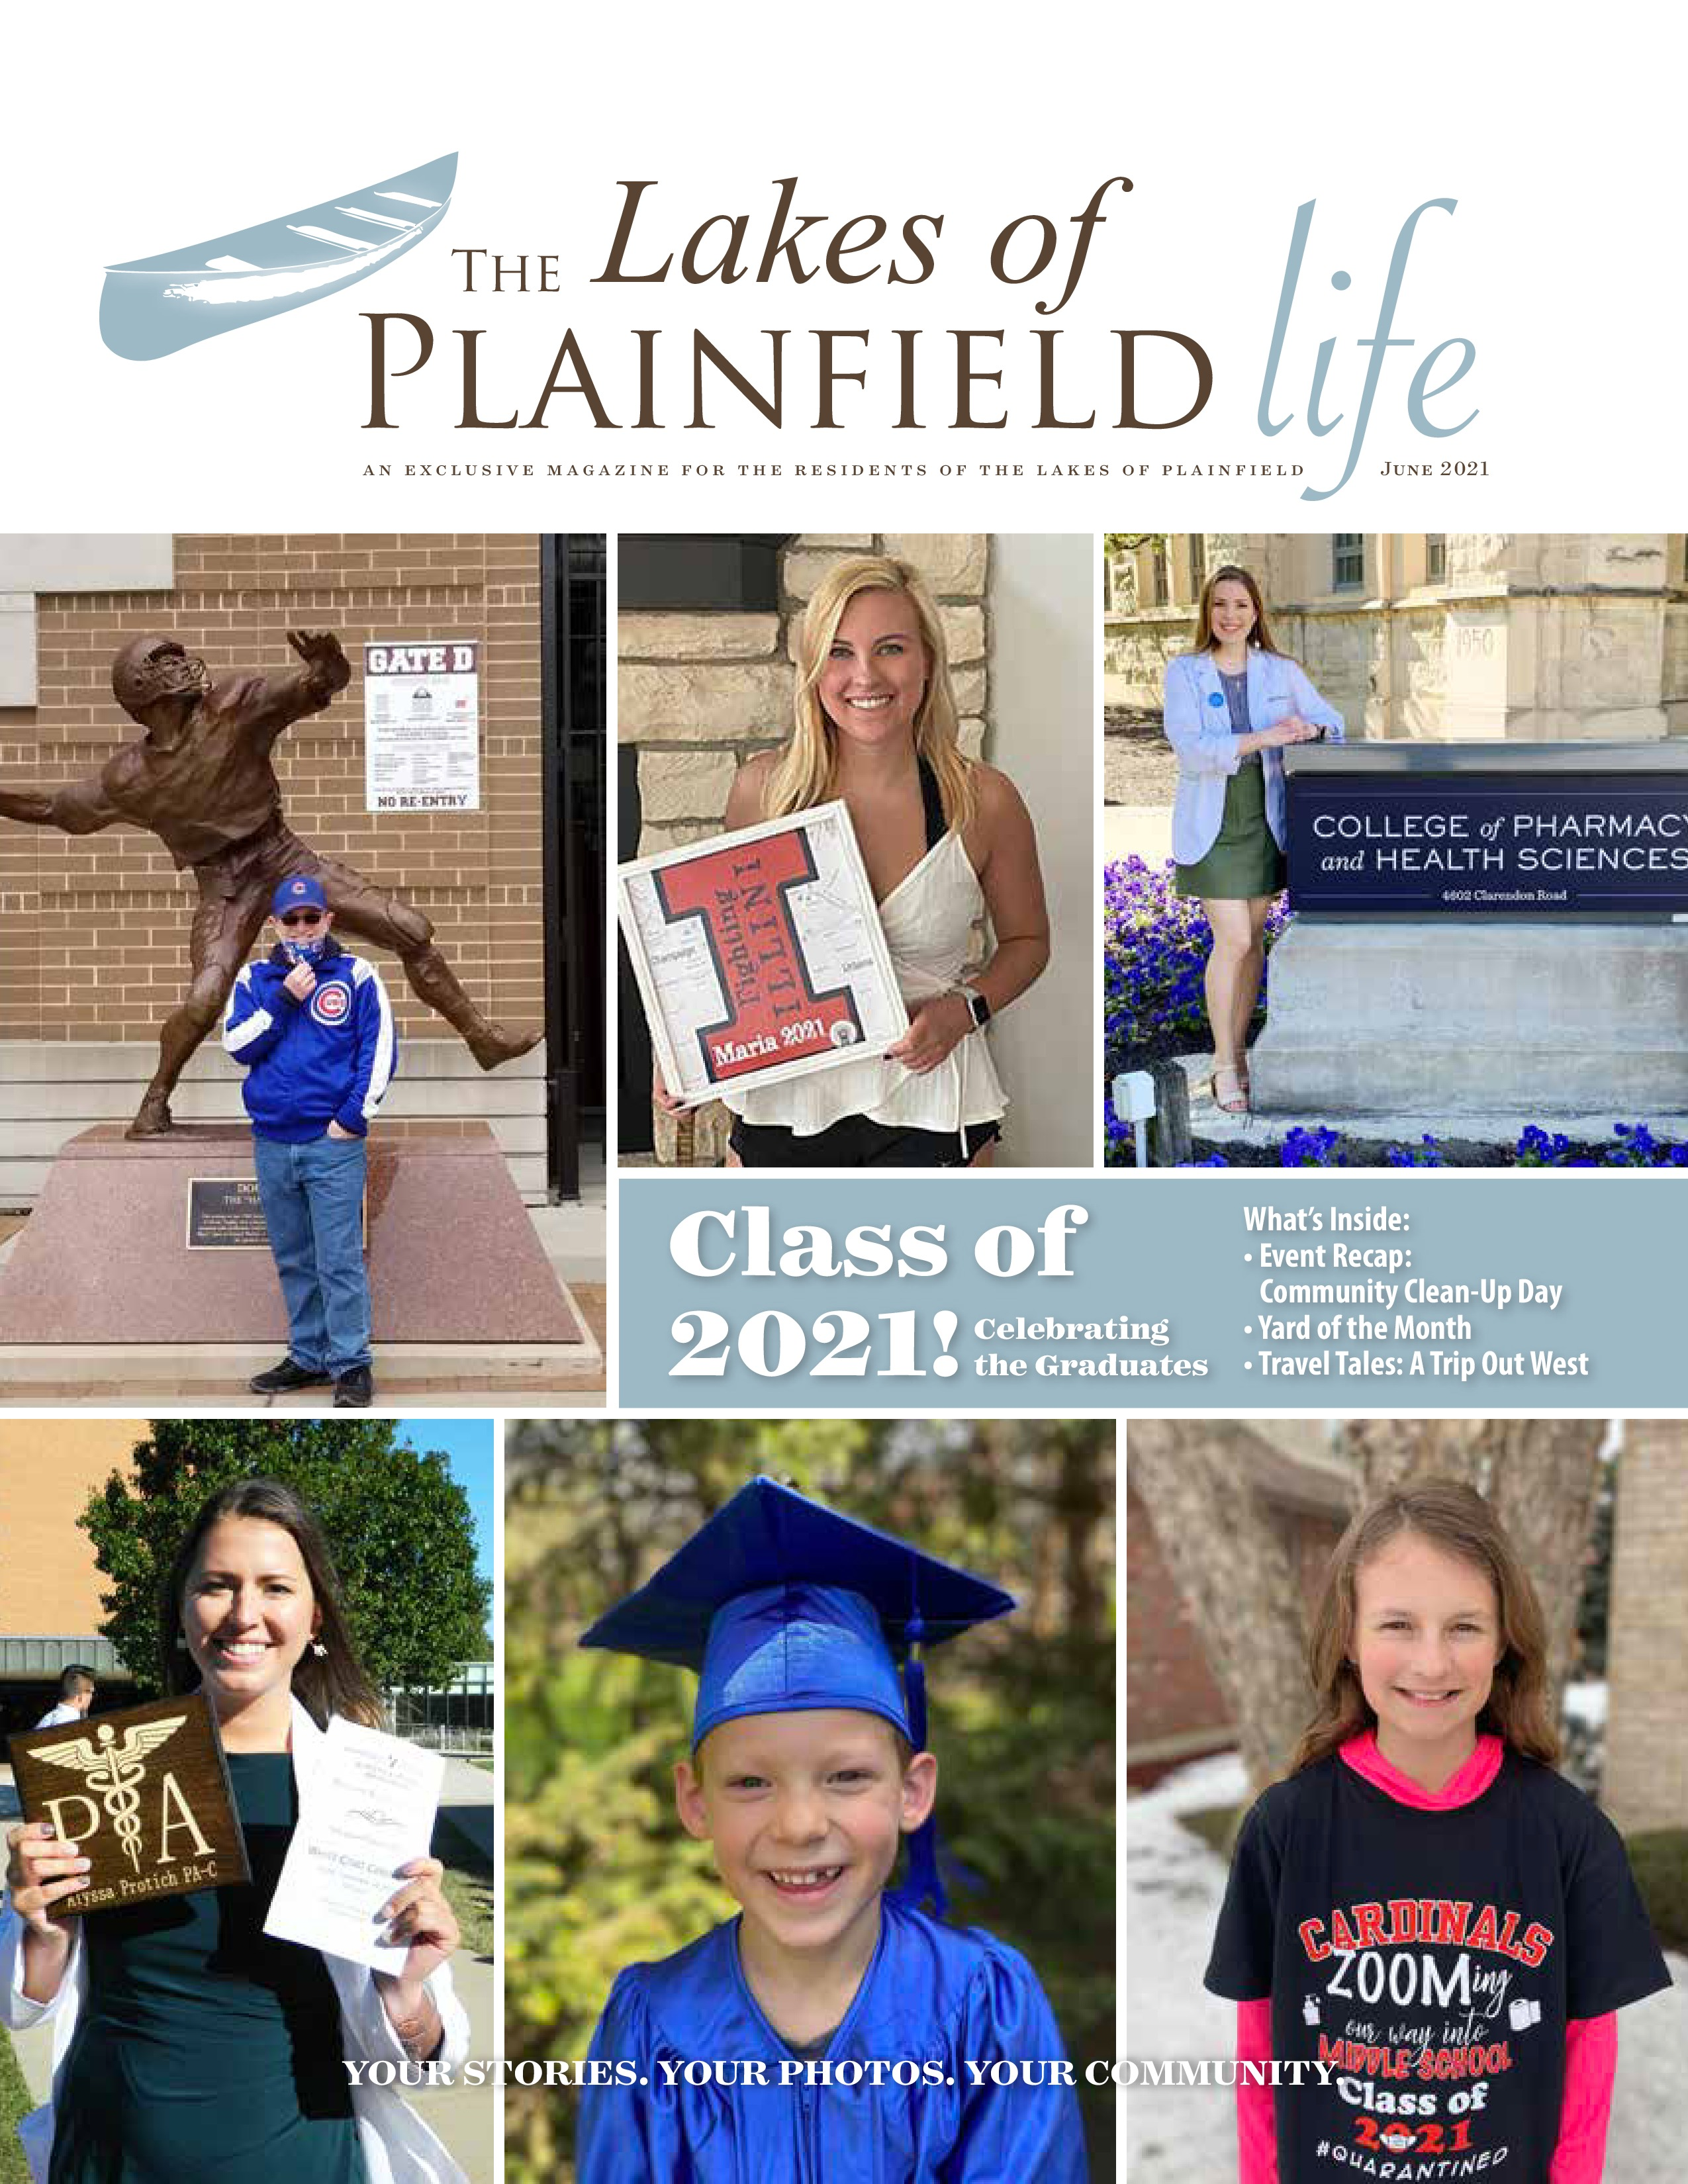 The Lakes of Plainfield Life 2021-06-01